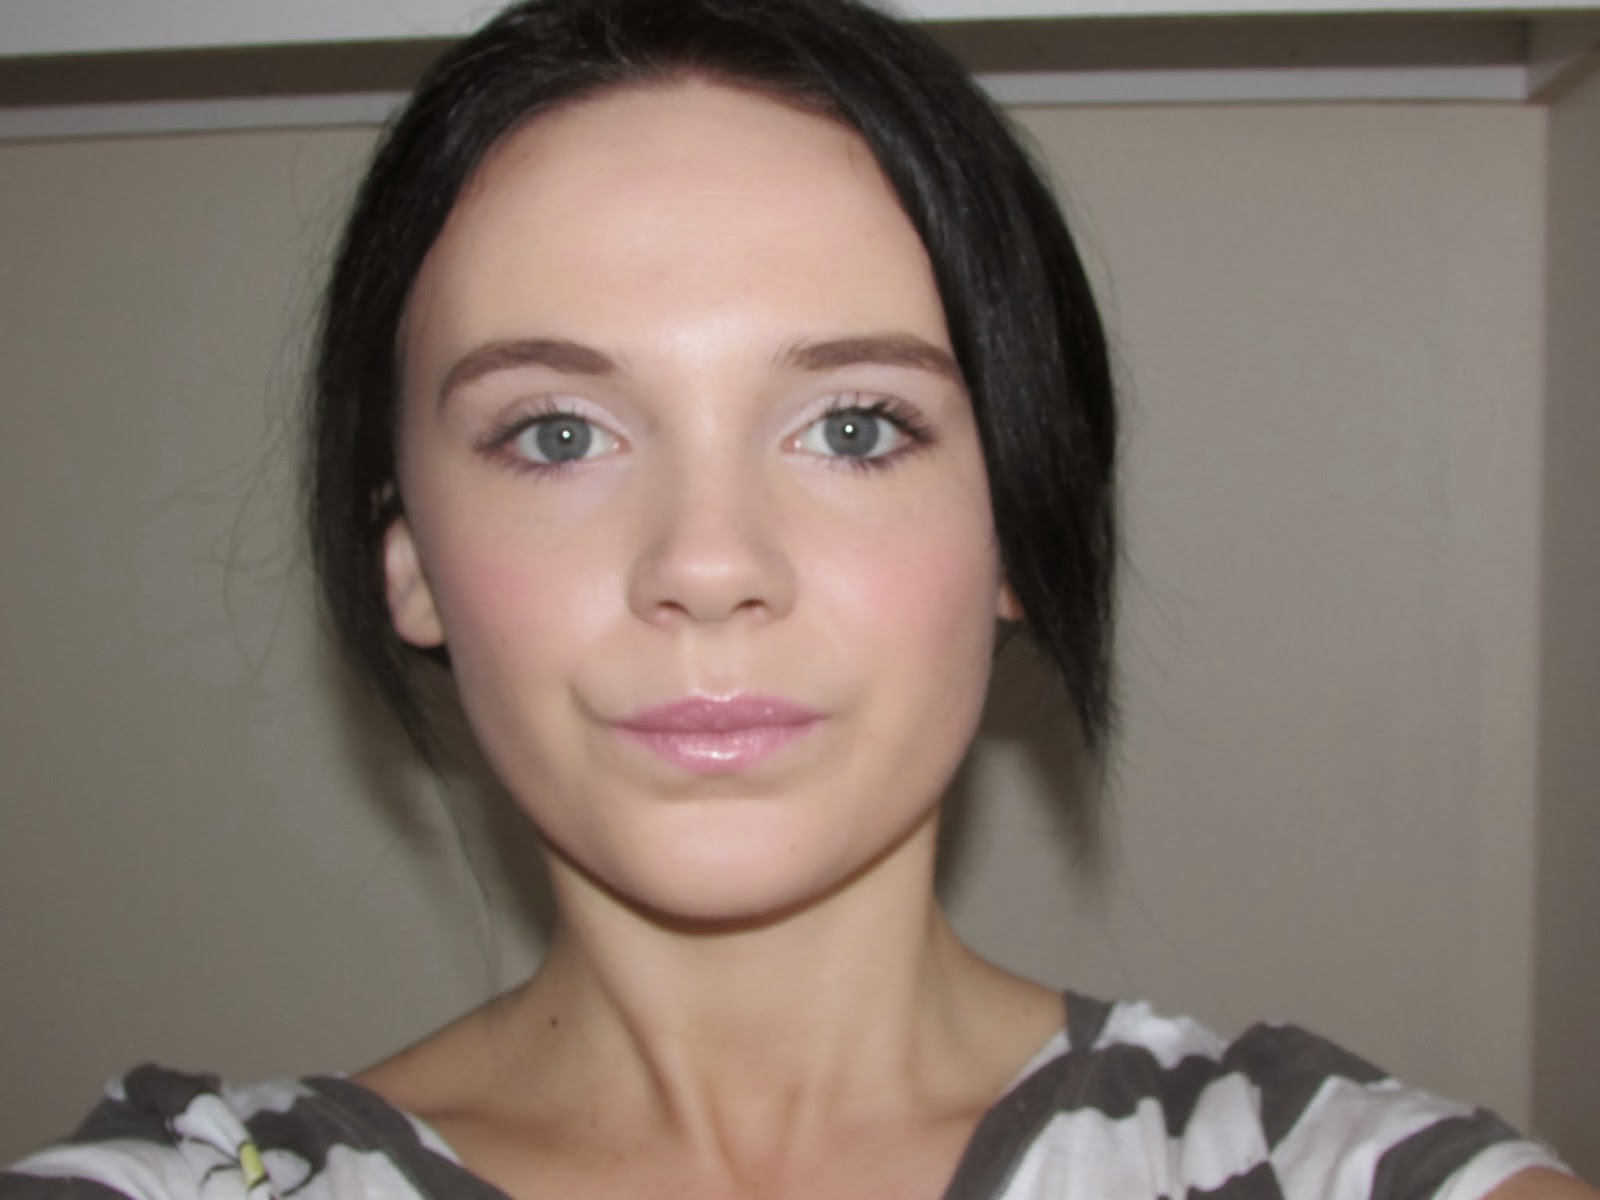 Face of the Day - 19th Of January